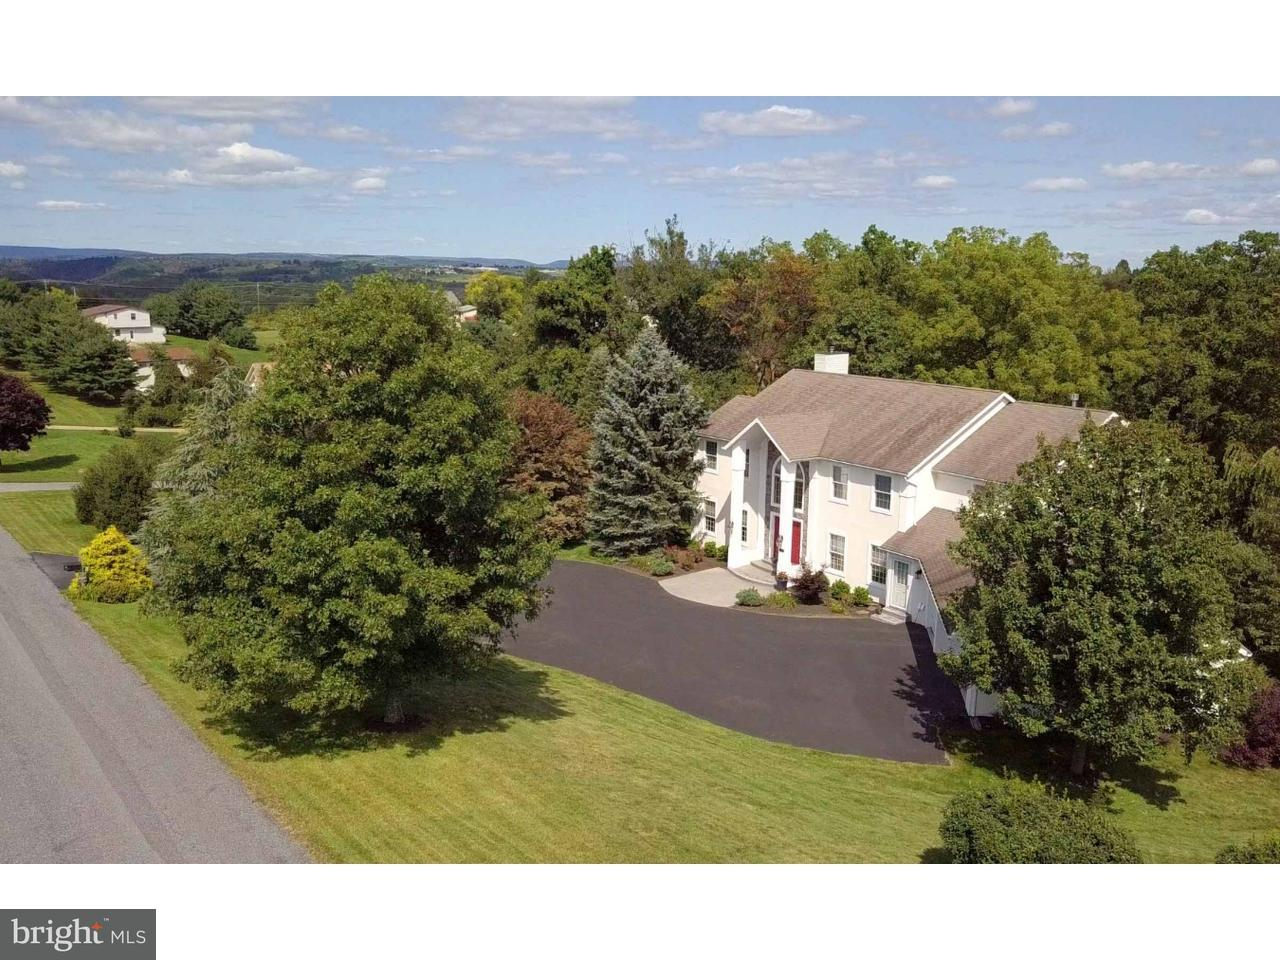 Single Family Home for Sale at 2877 WILSHIRE Court Orefield, Pennsylvania 18069 United States